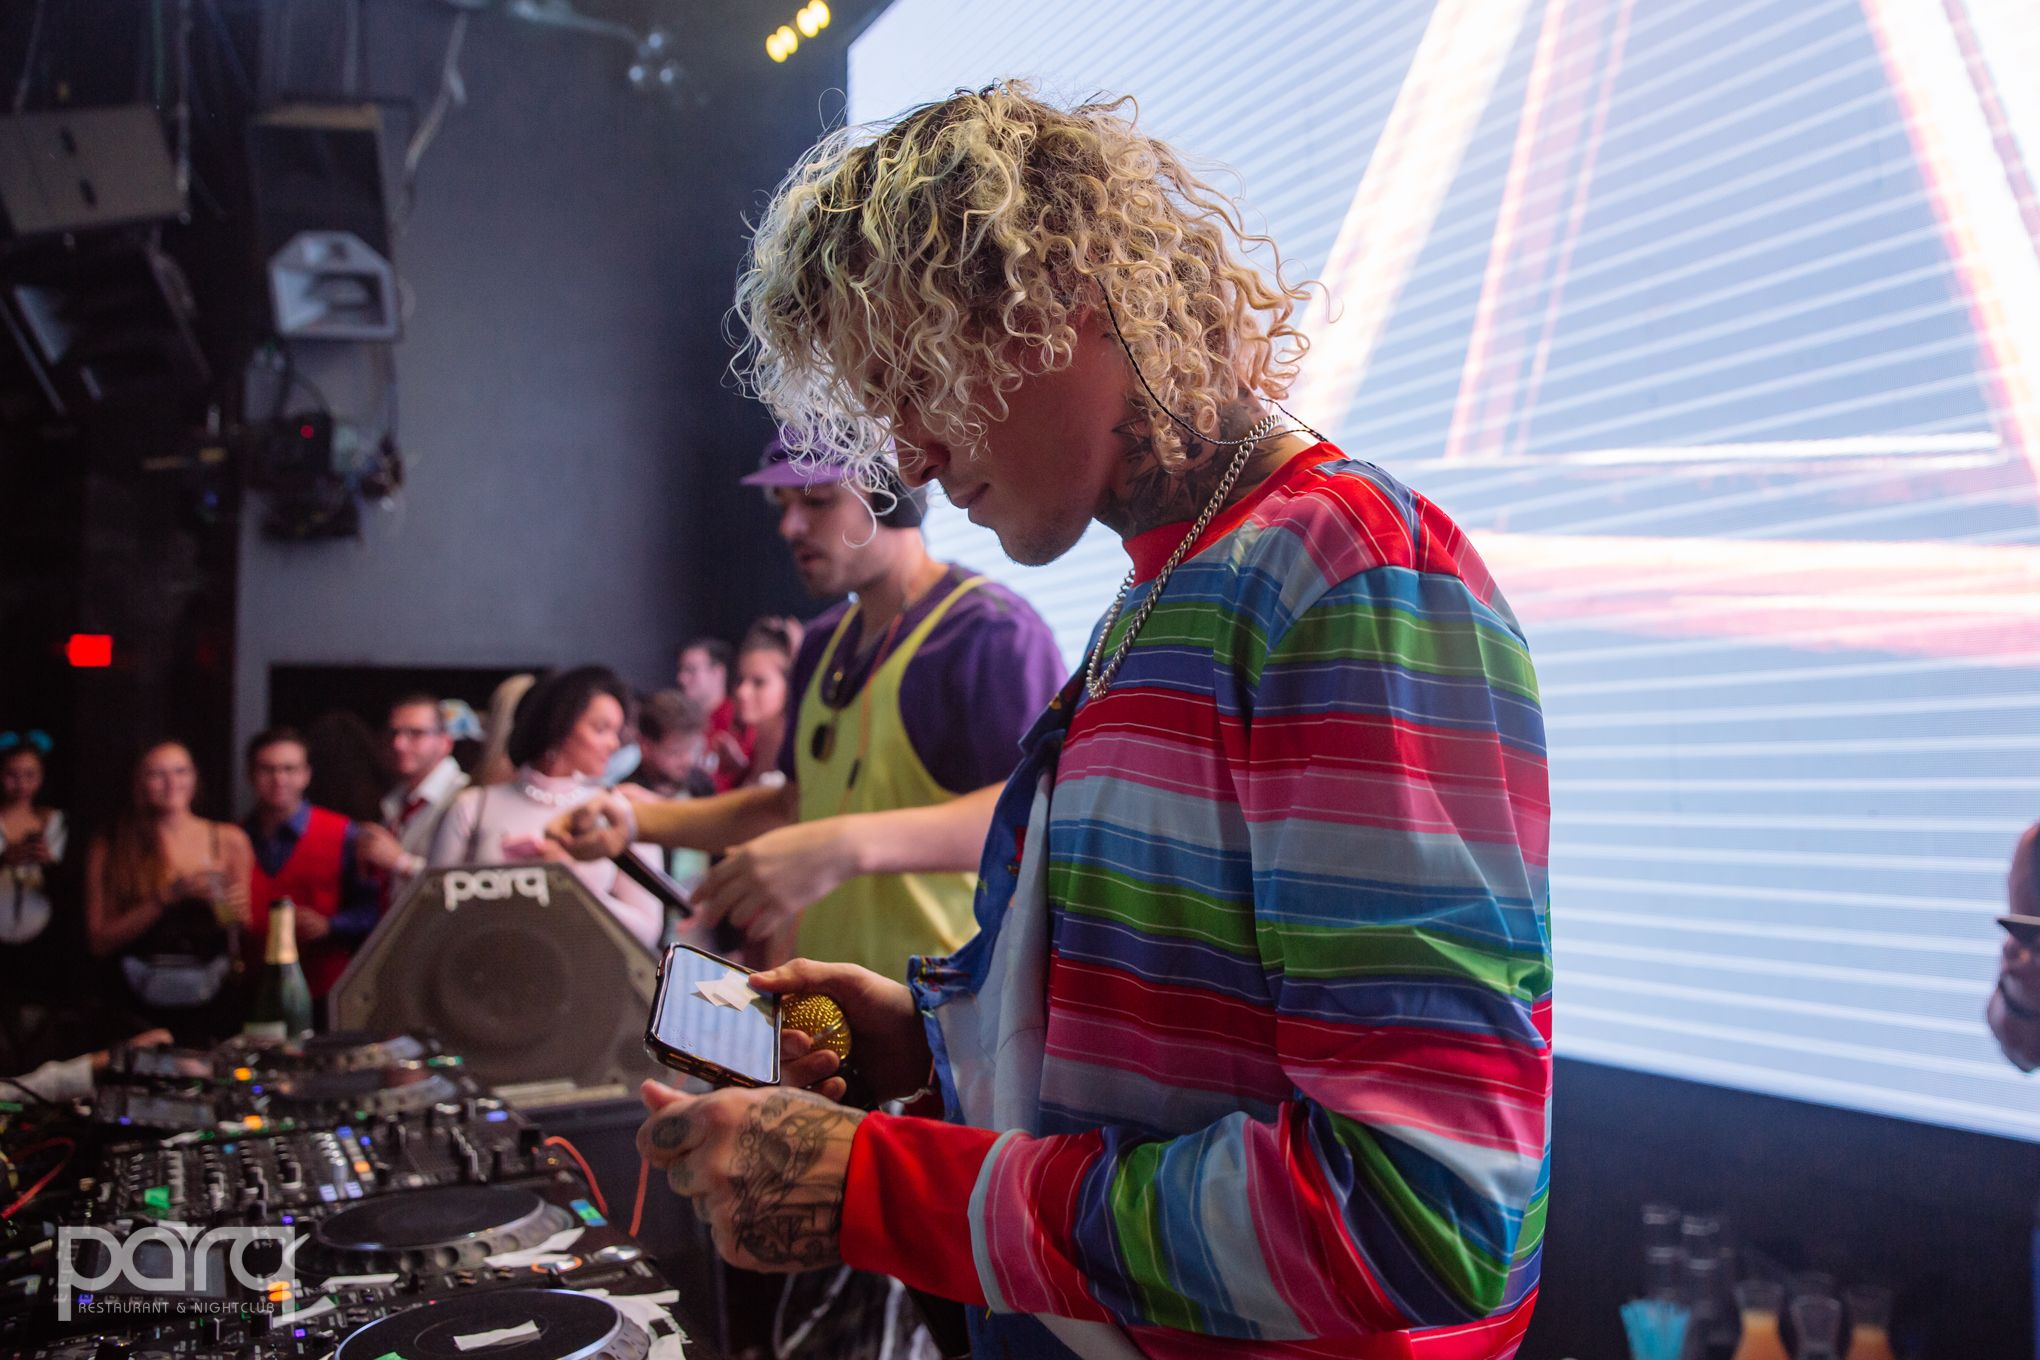 10.31.19 Parq - Cheat Codes-39.jpg